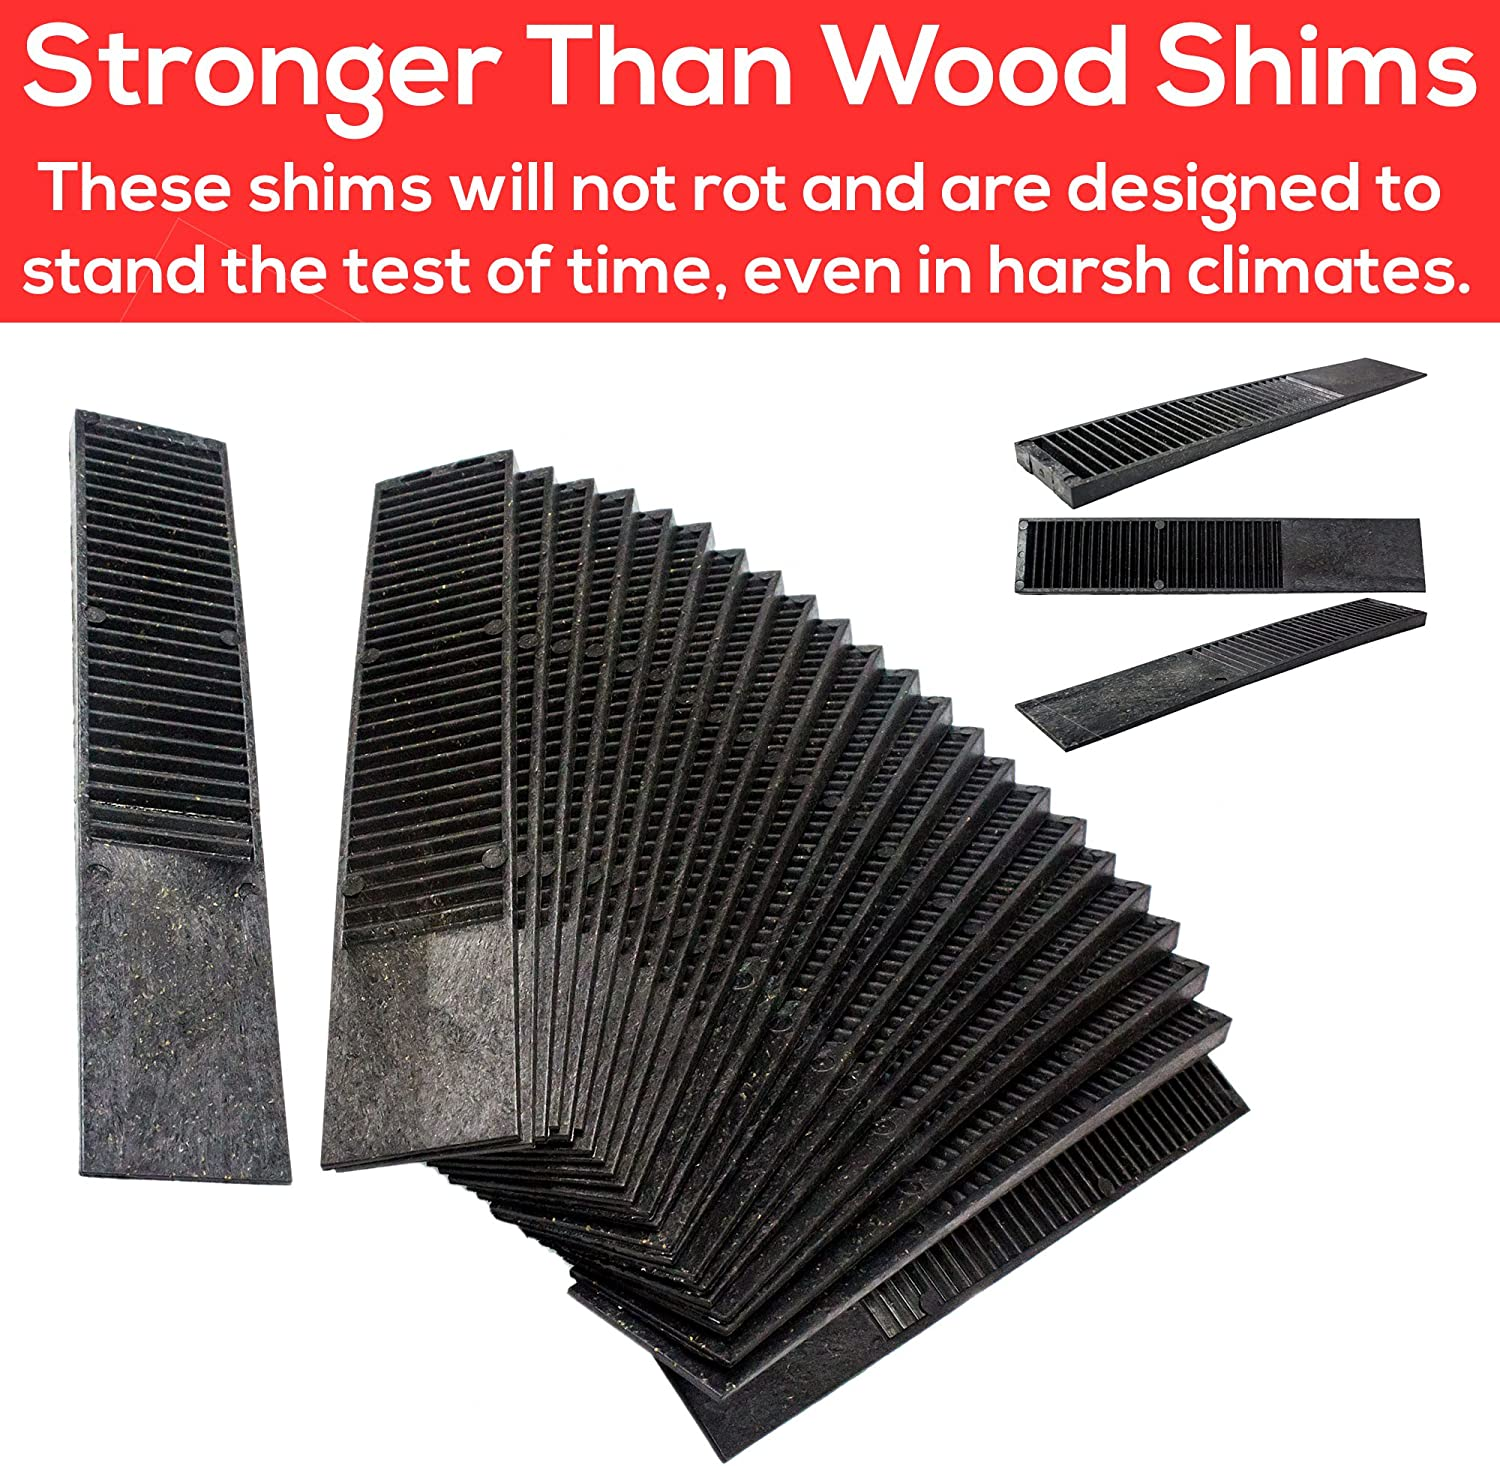 Windows Home Improvement DIY Levelers Have Extreme Weight Capacity /& Sheds. Easy to Break /& Perfect for Doors are Weather Resistant 24 Pack Pro Project Supplys Never-Rot 8 Inch Composite Shims